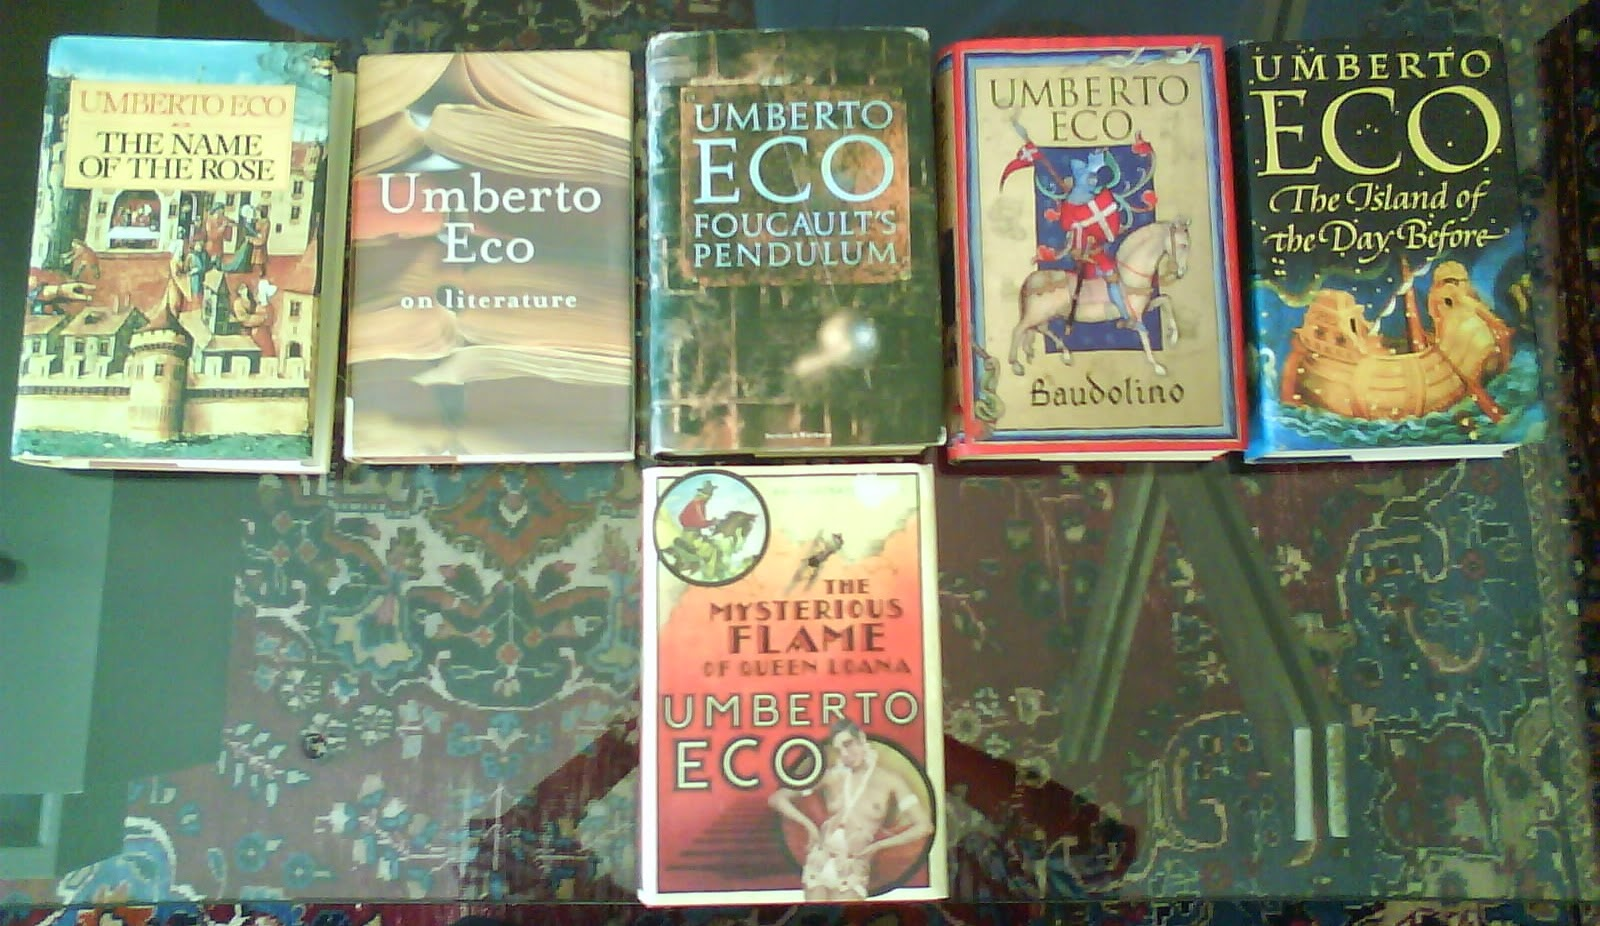 Books by Umberto Ecco